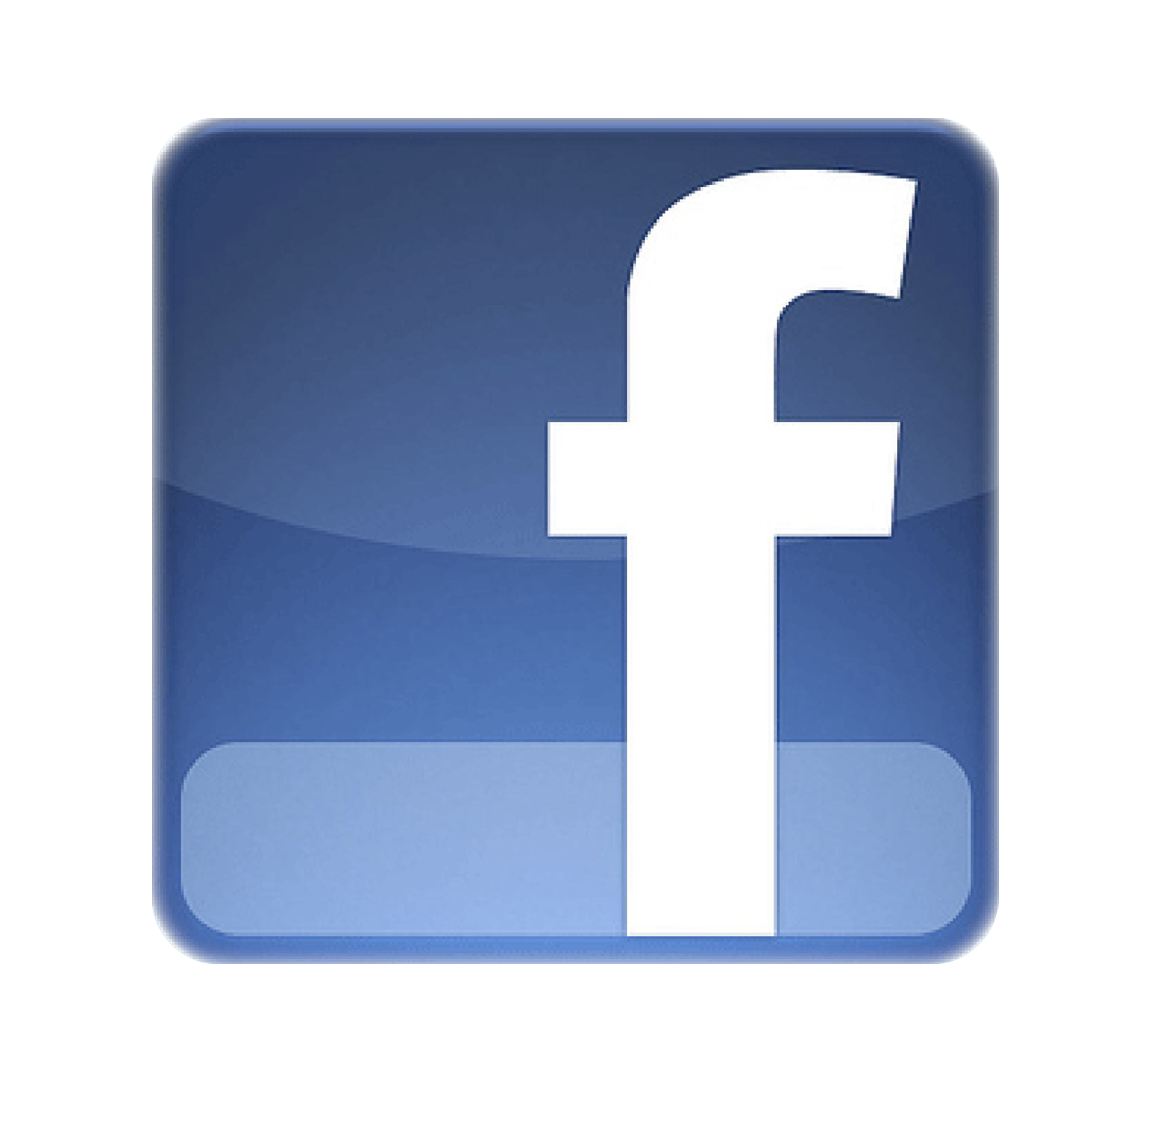 facebook logo facebook income of $ 5 billion yeah facebook